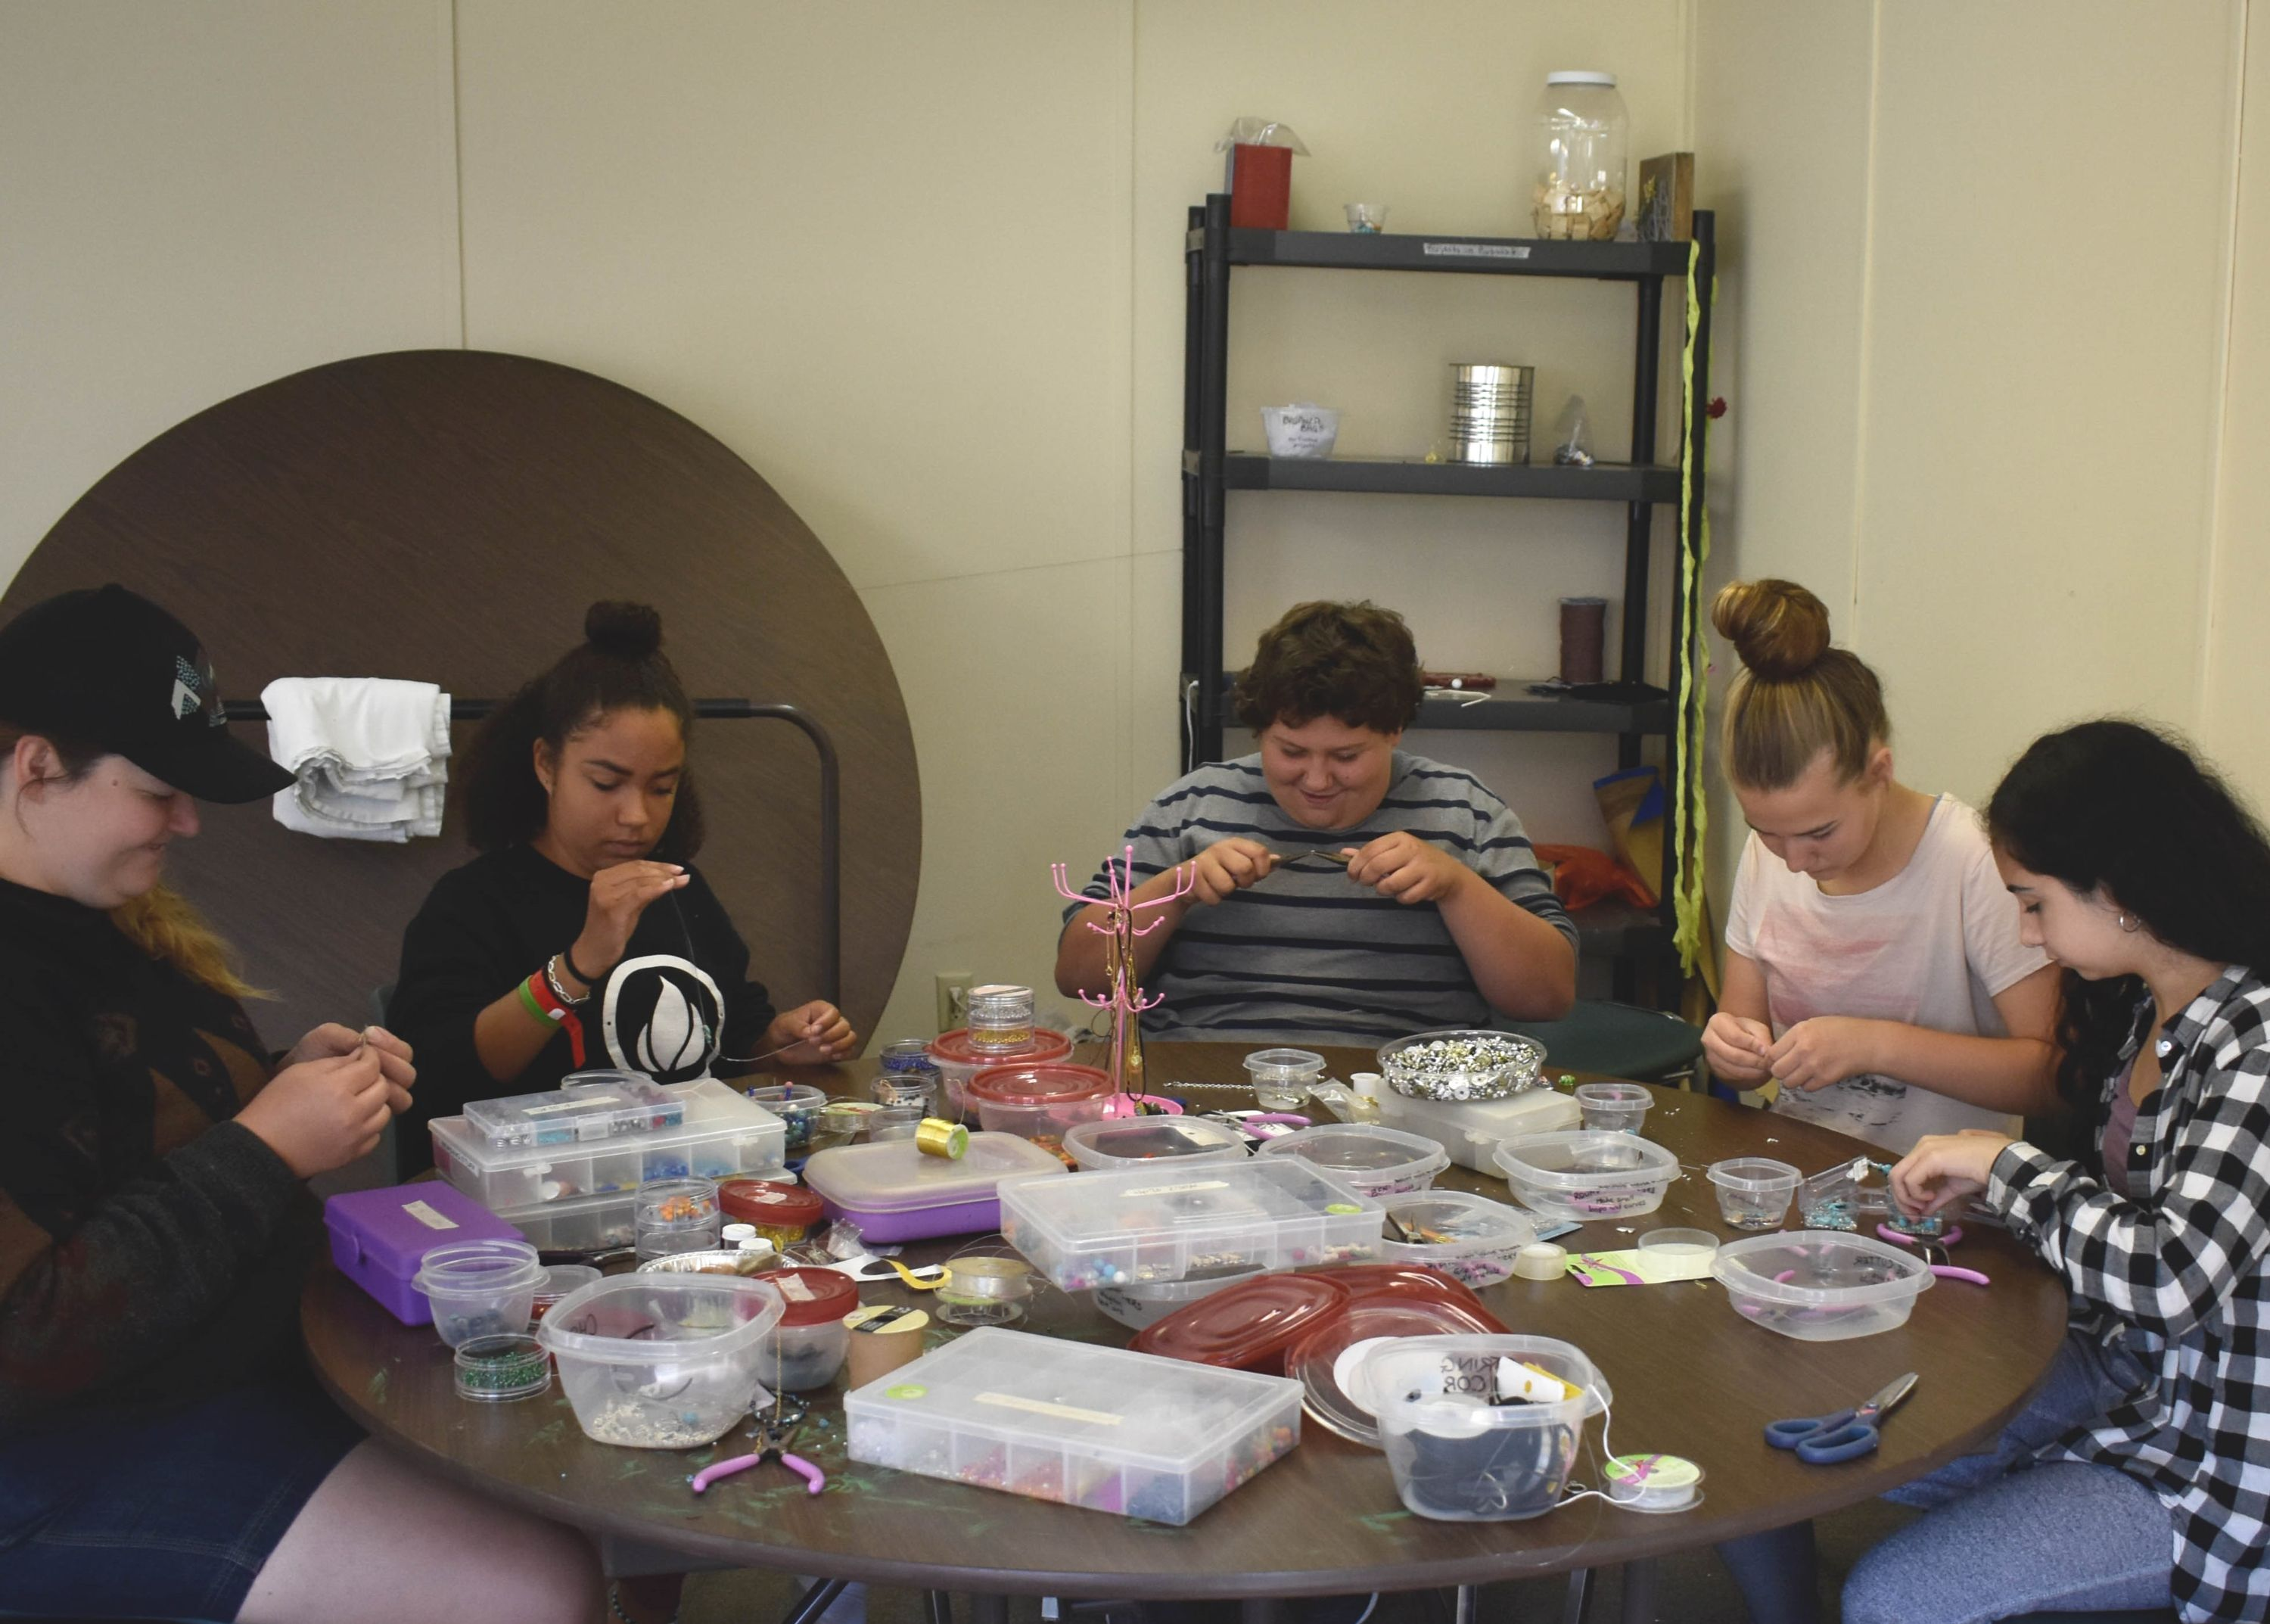 campers working in their jewellery creations at christian Summer Camp in haliburton, ontario